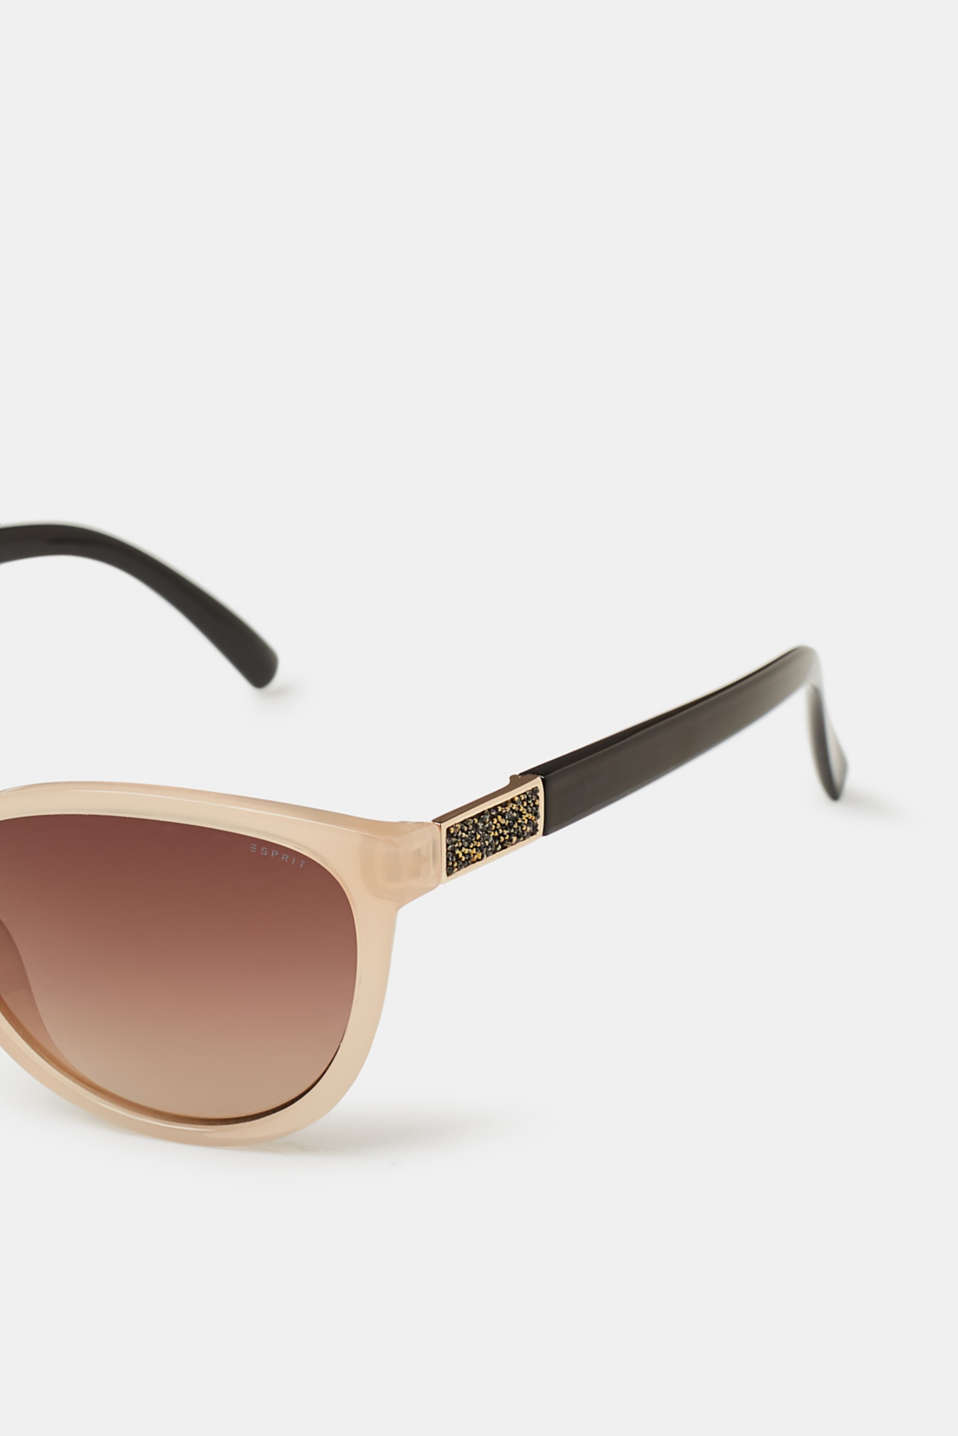 Sunglasses with glittery elements, BEIGE, detail image number 1